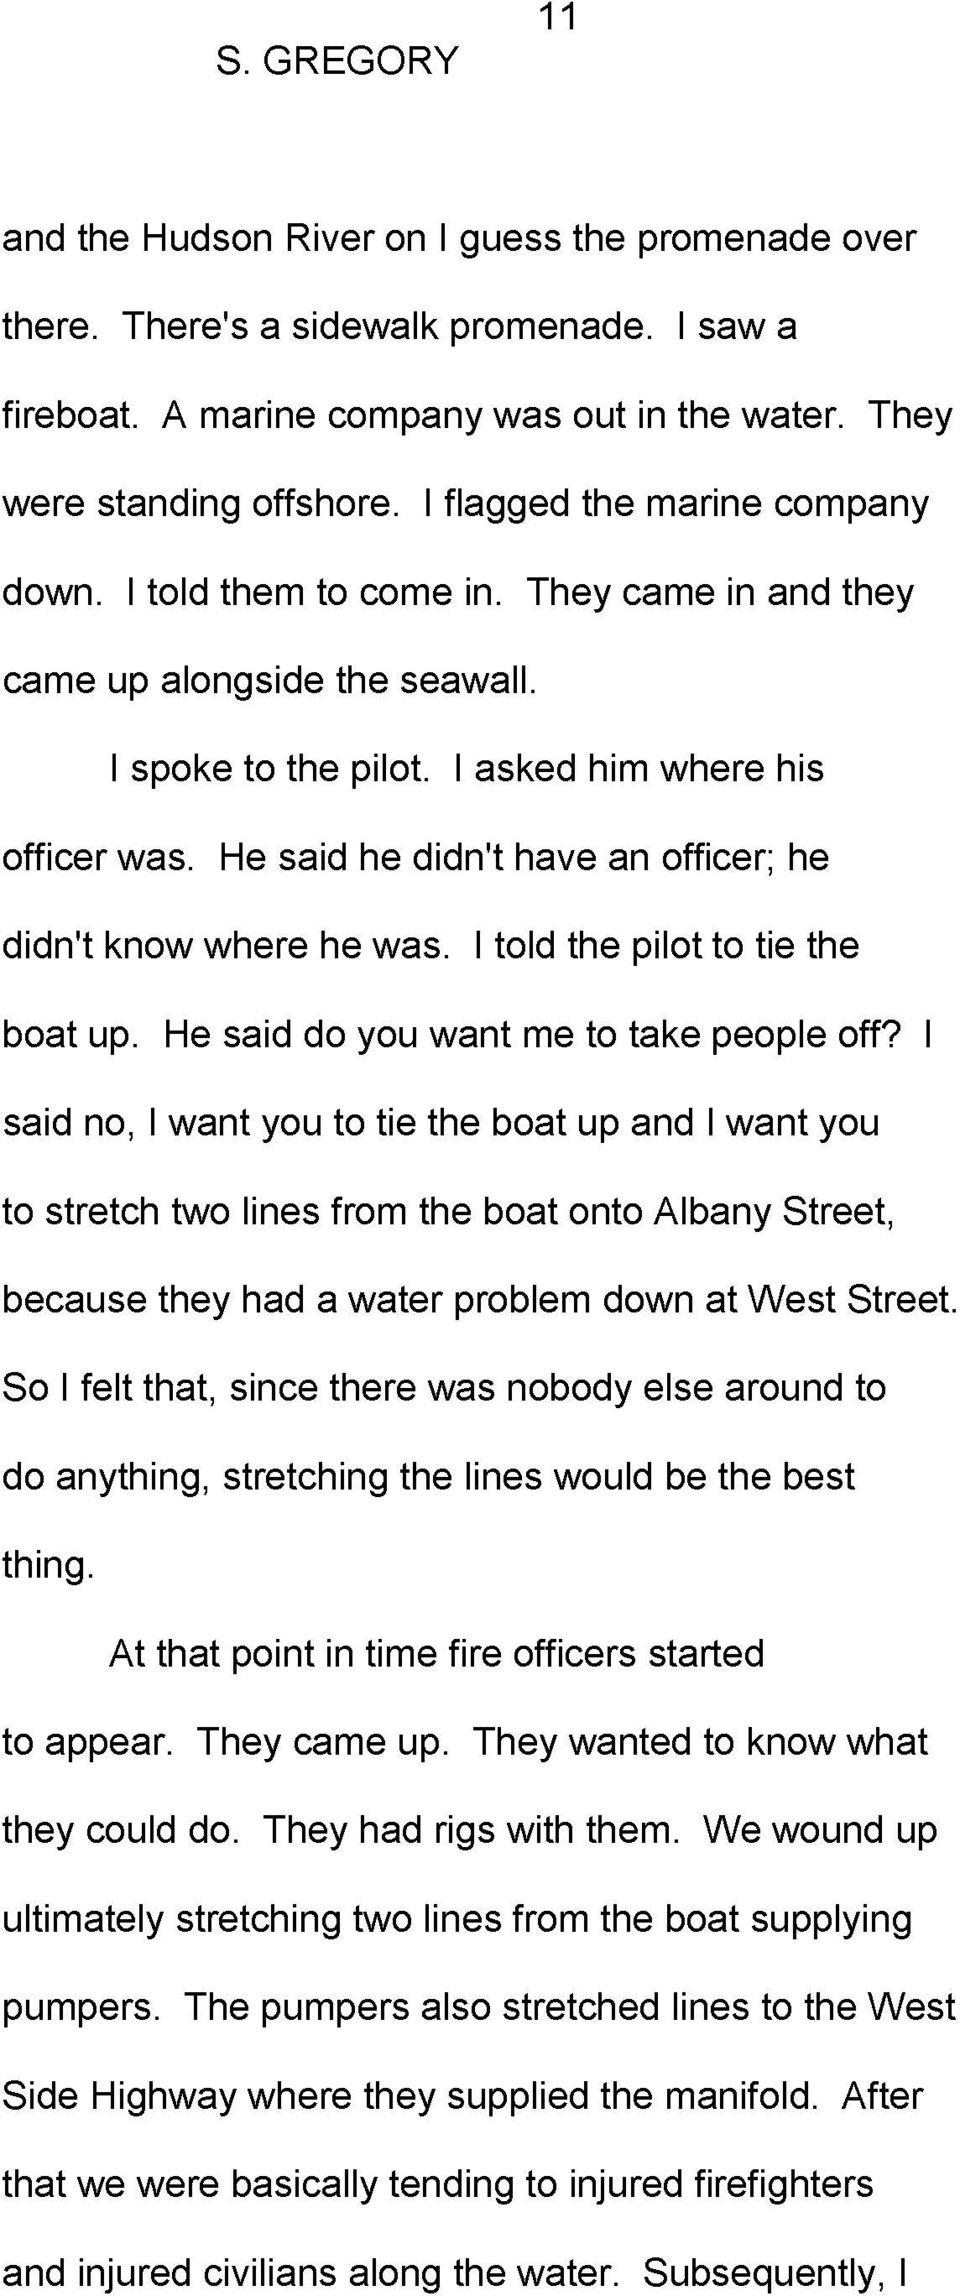 He said he didn't have an officer; he didn't know where he was. I told the pilot to tie the boat up. He said do you want me to take people off?